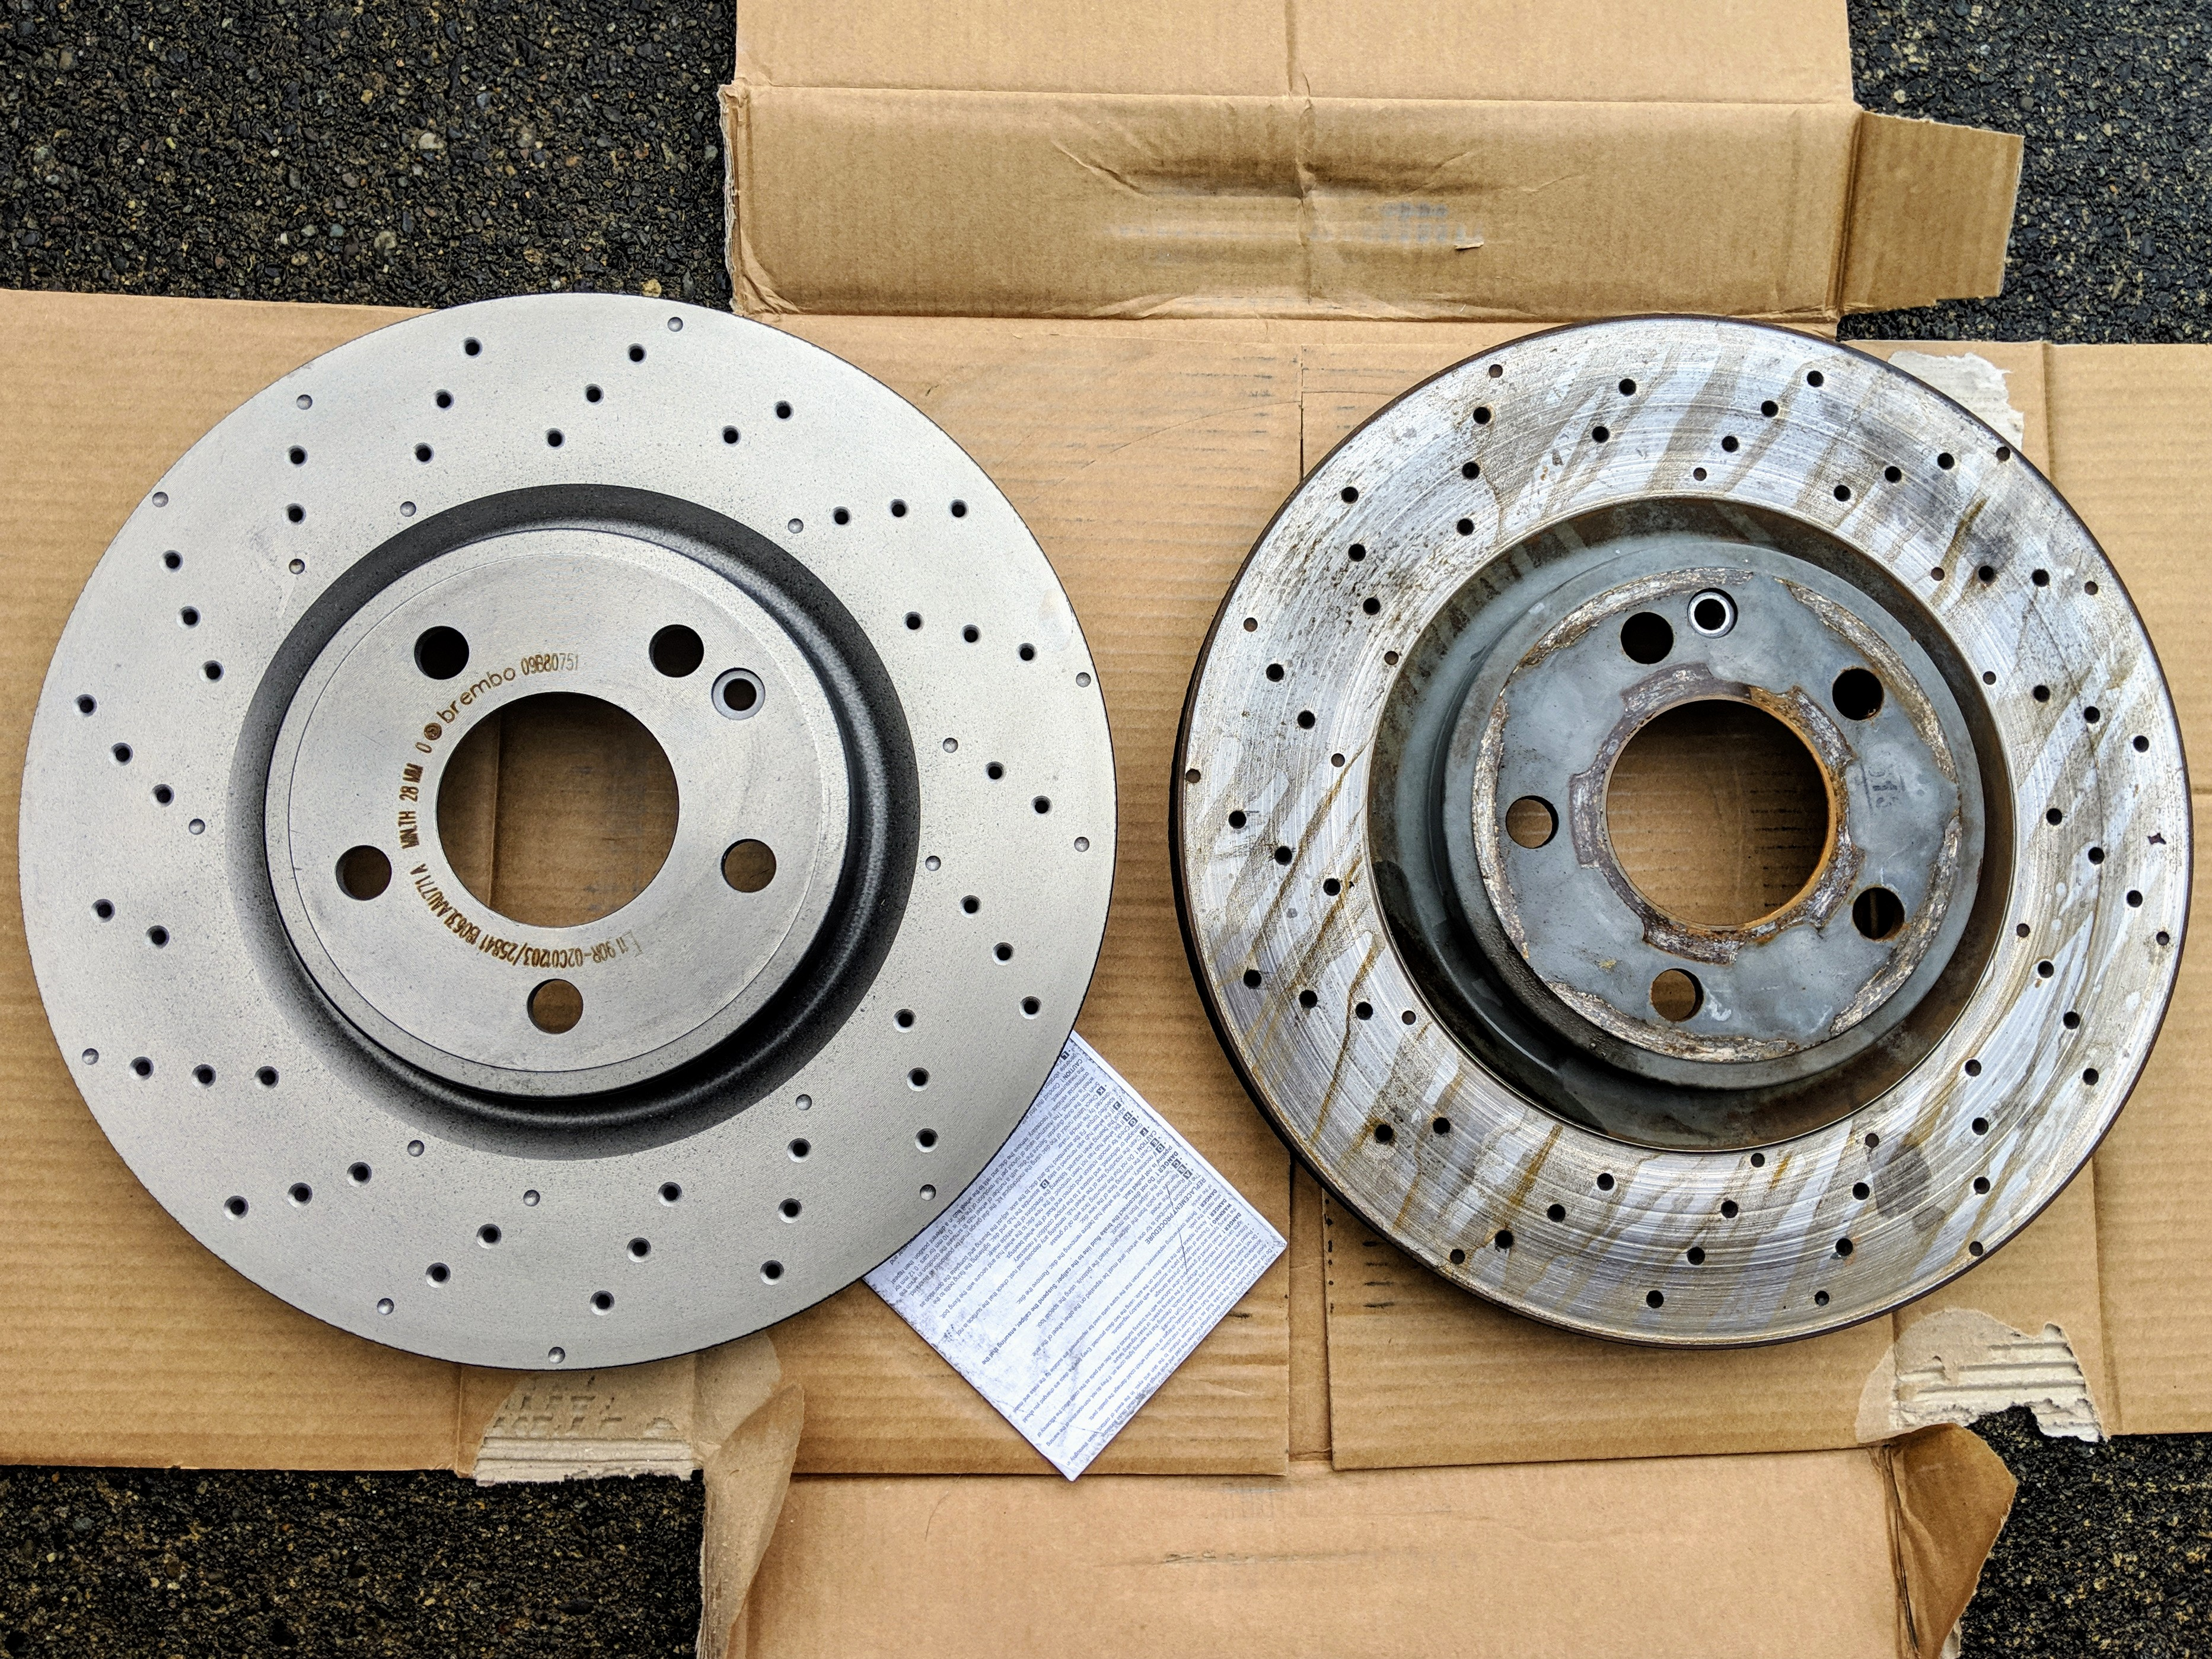 Just Did My First Cla250 Brake Job Success Story And Some Diy Tips Mercedes Cla Forum